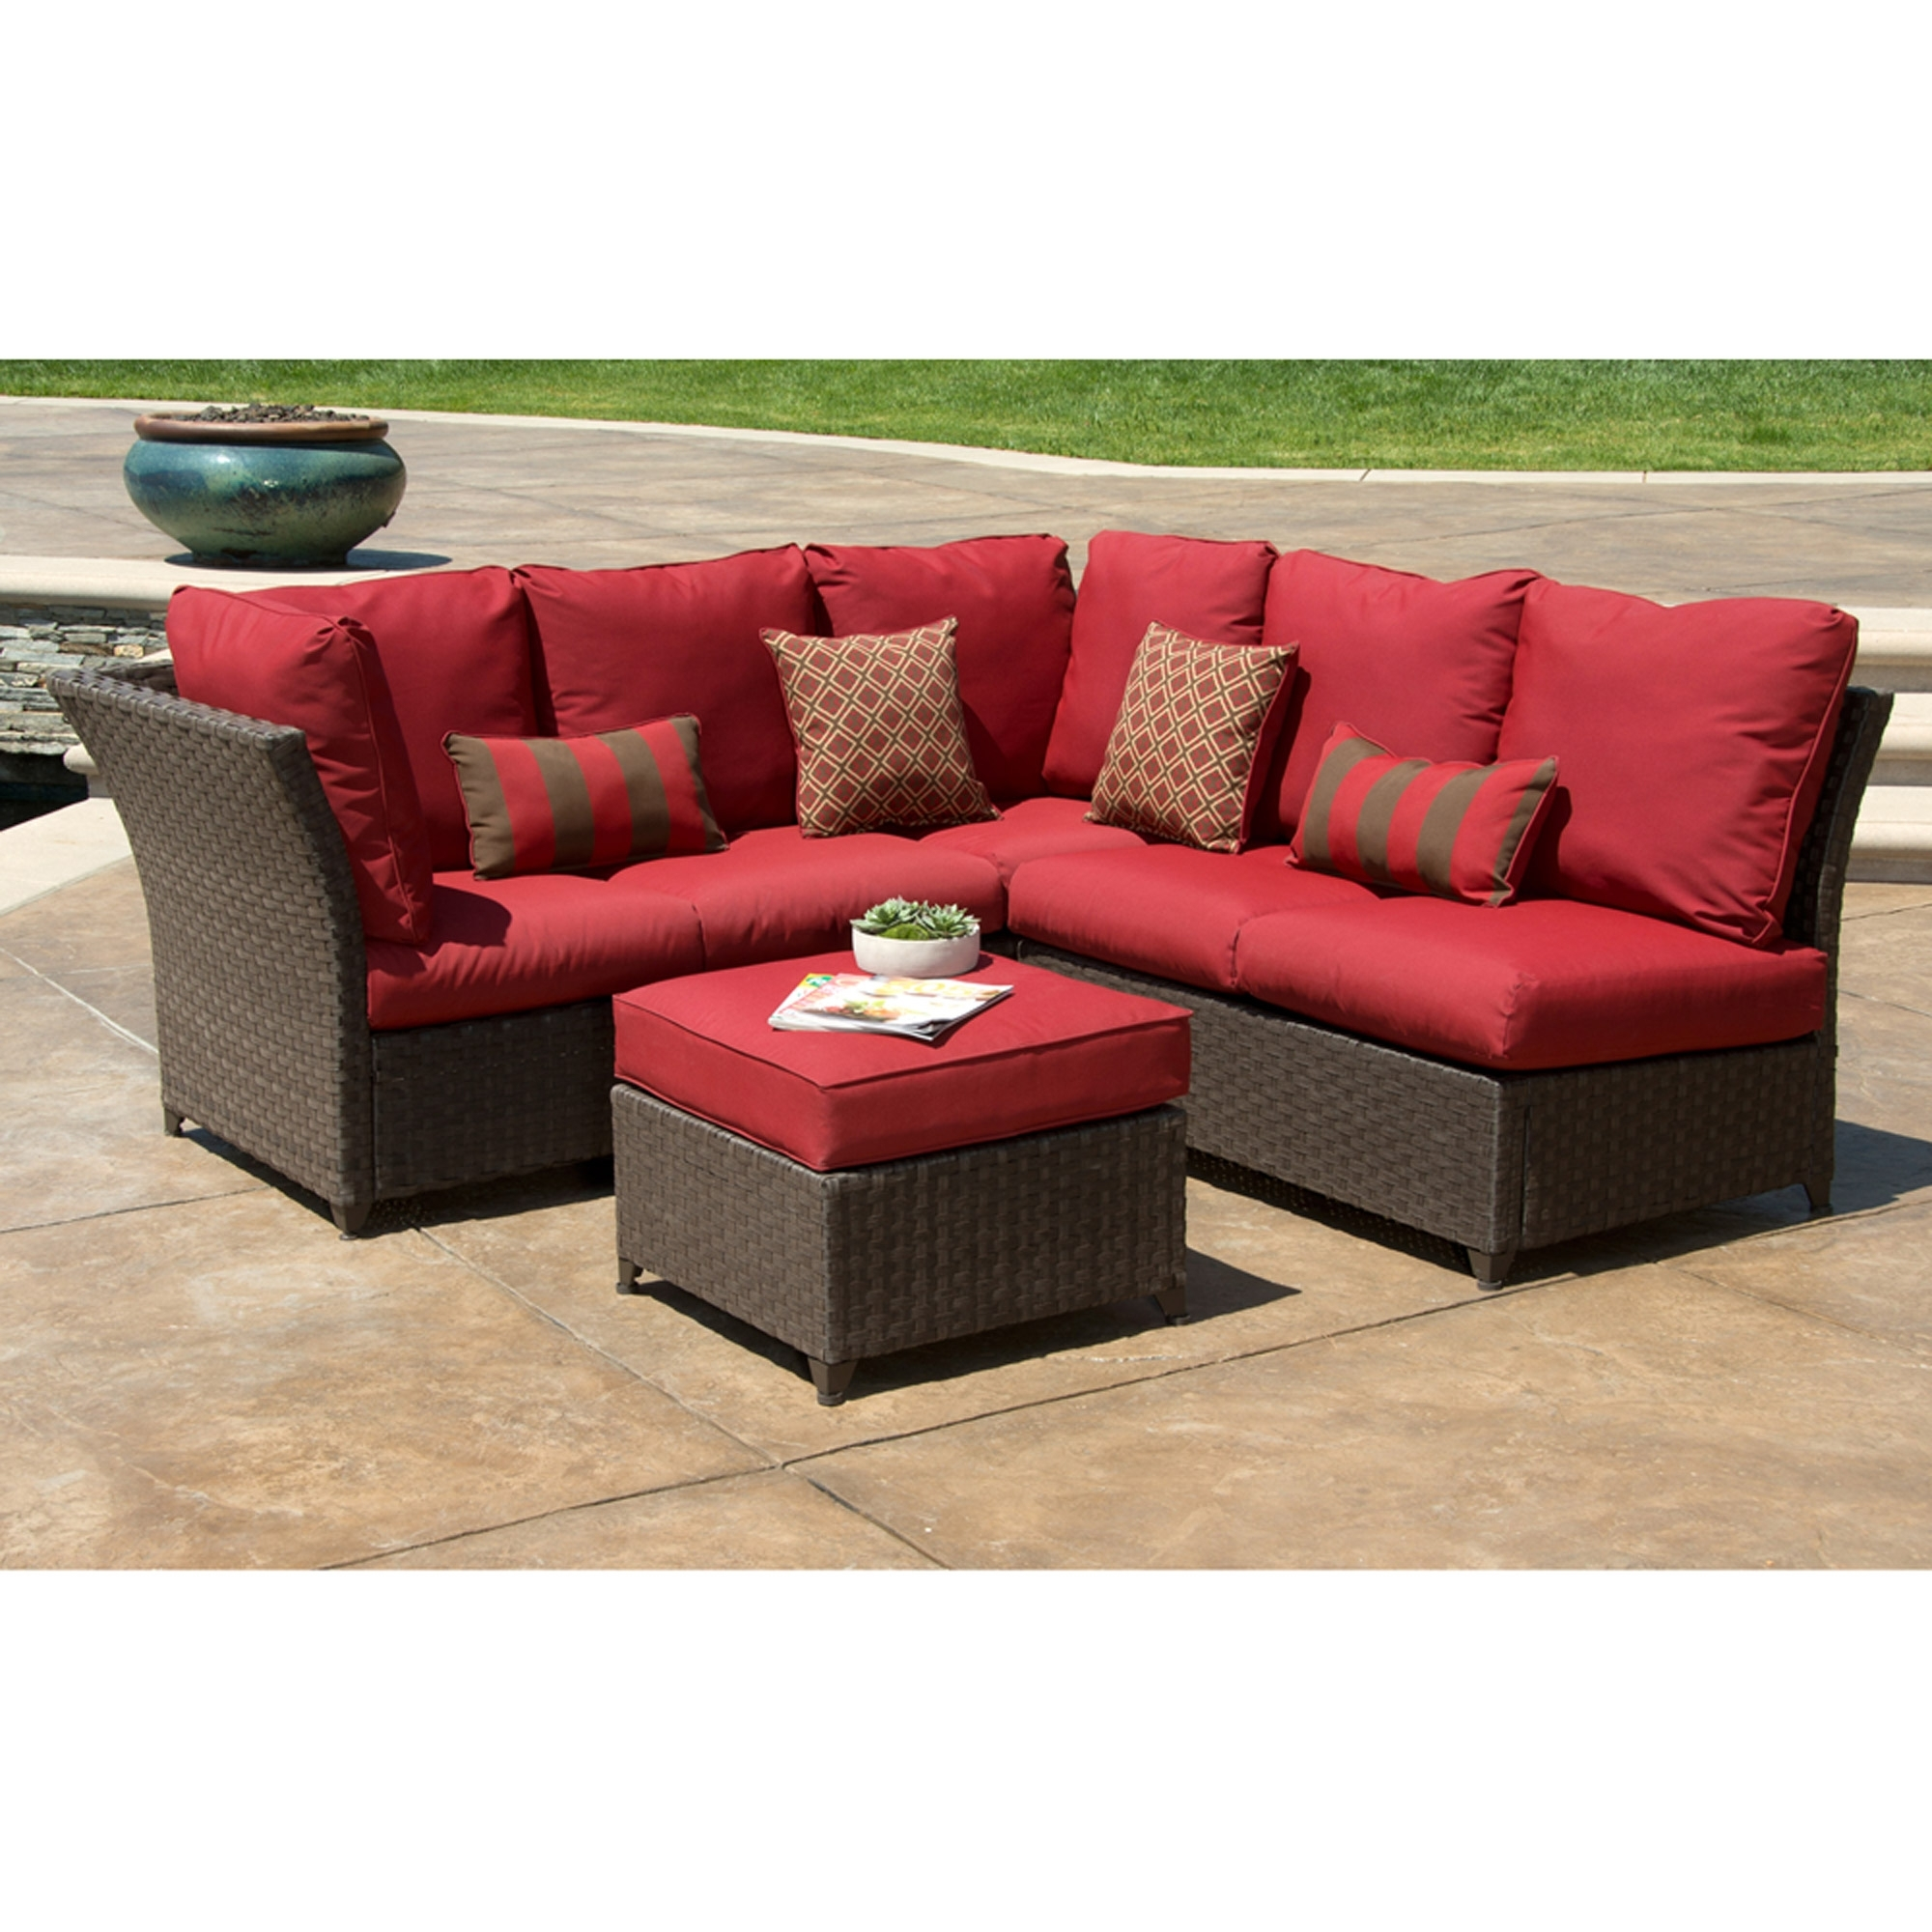 Stunning Walmart Sectional Sofas 30 For Sectional Sofas Tampa Fl For Tampa Fl Sectional Sofas (View 6 of 10)